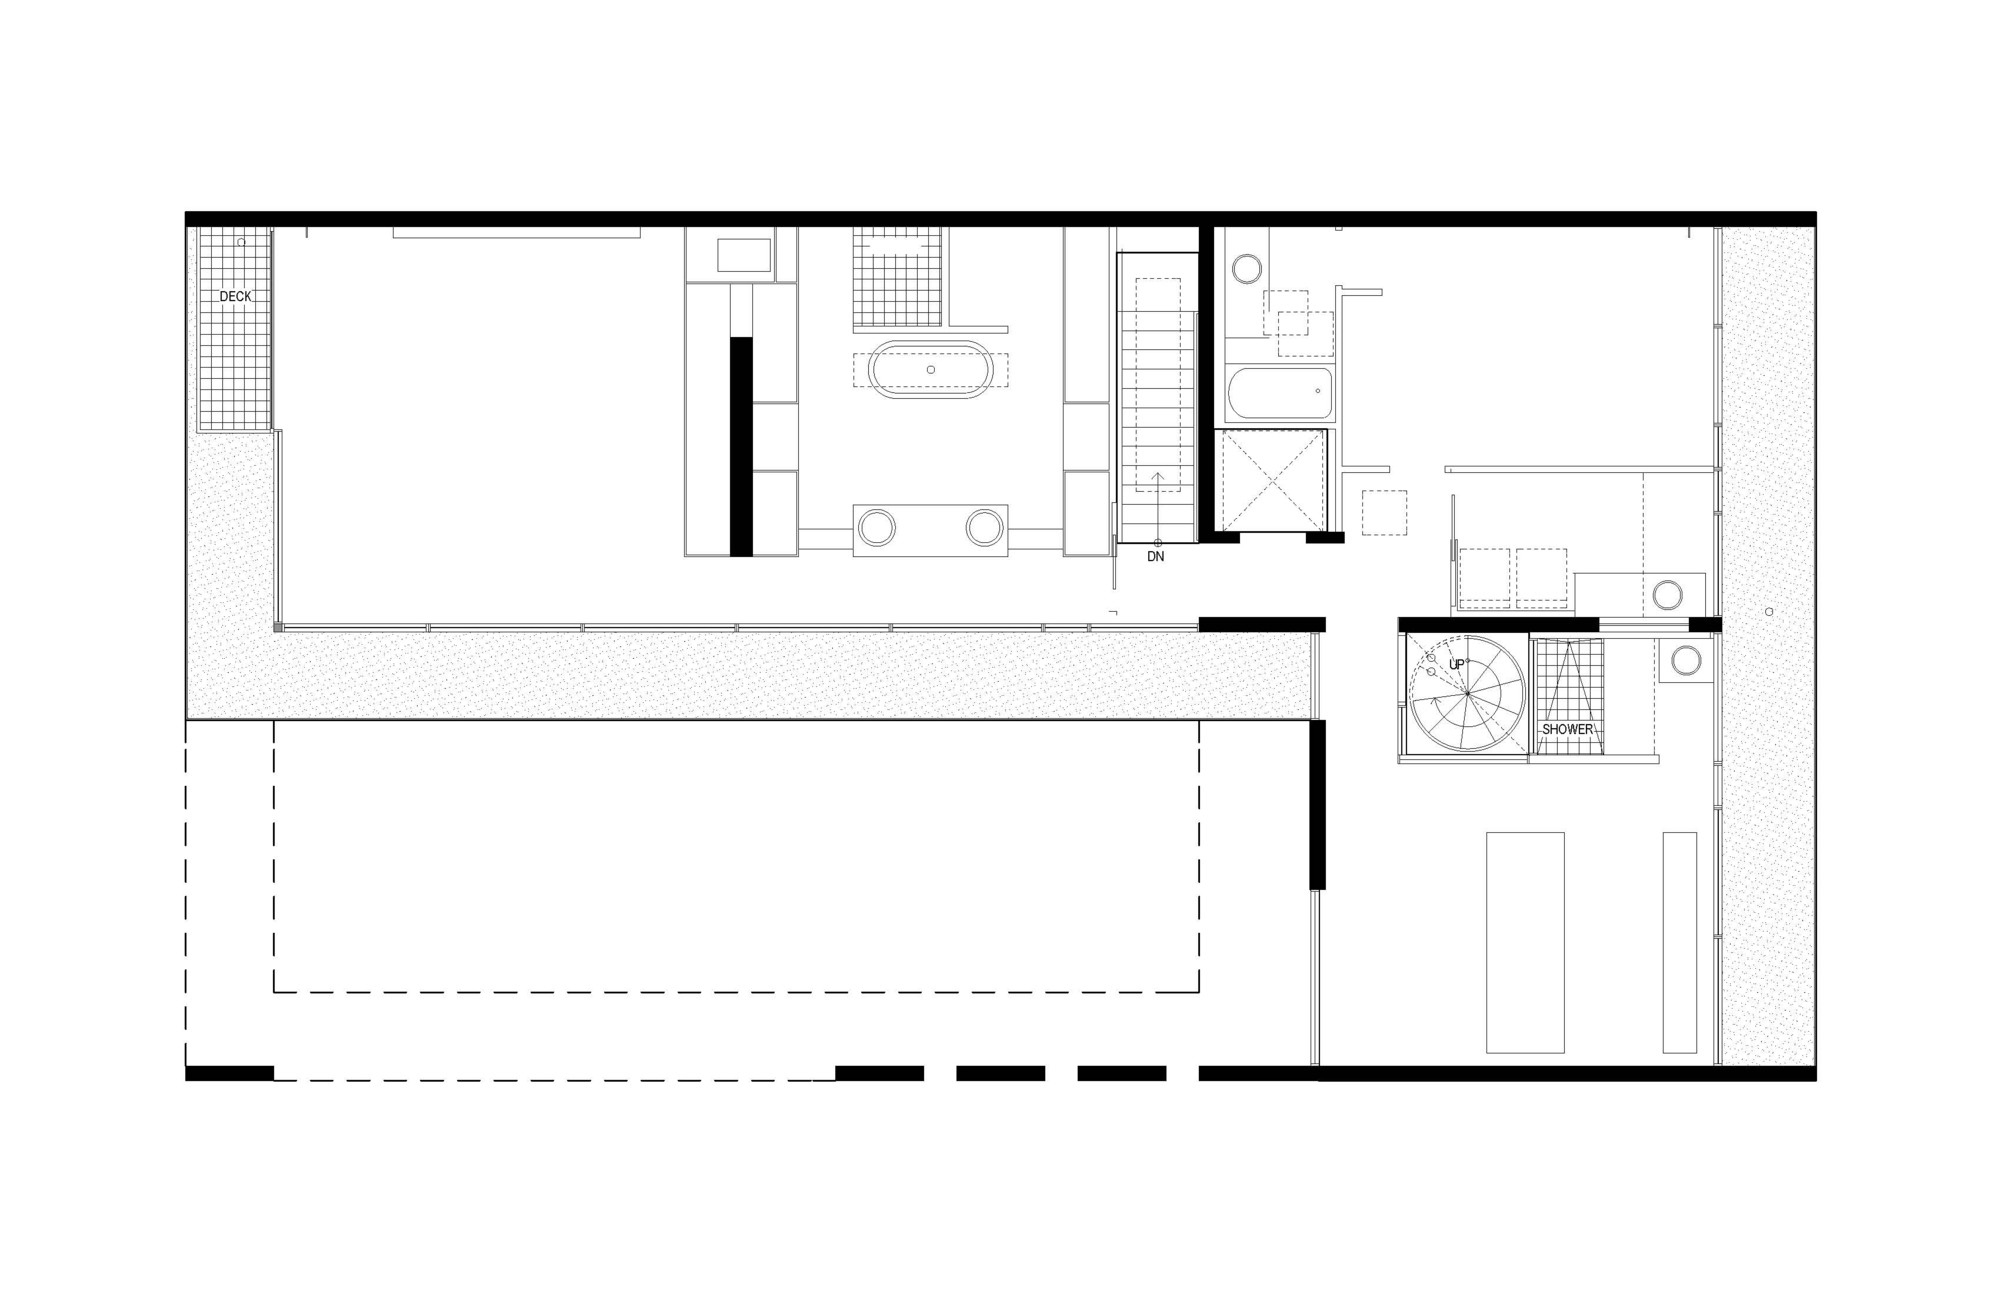 Gallery of the cresta jonathan segal faia 25 for 3000 sq ft commercial building plans